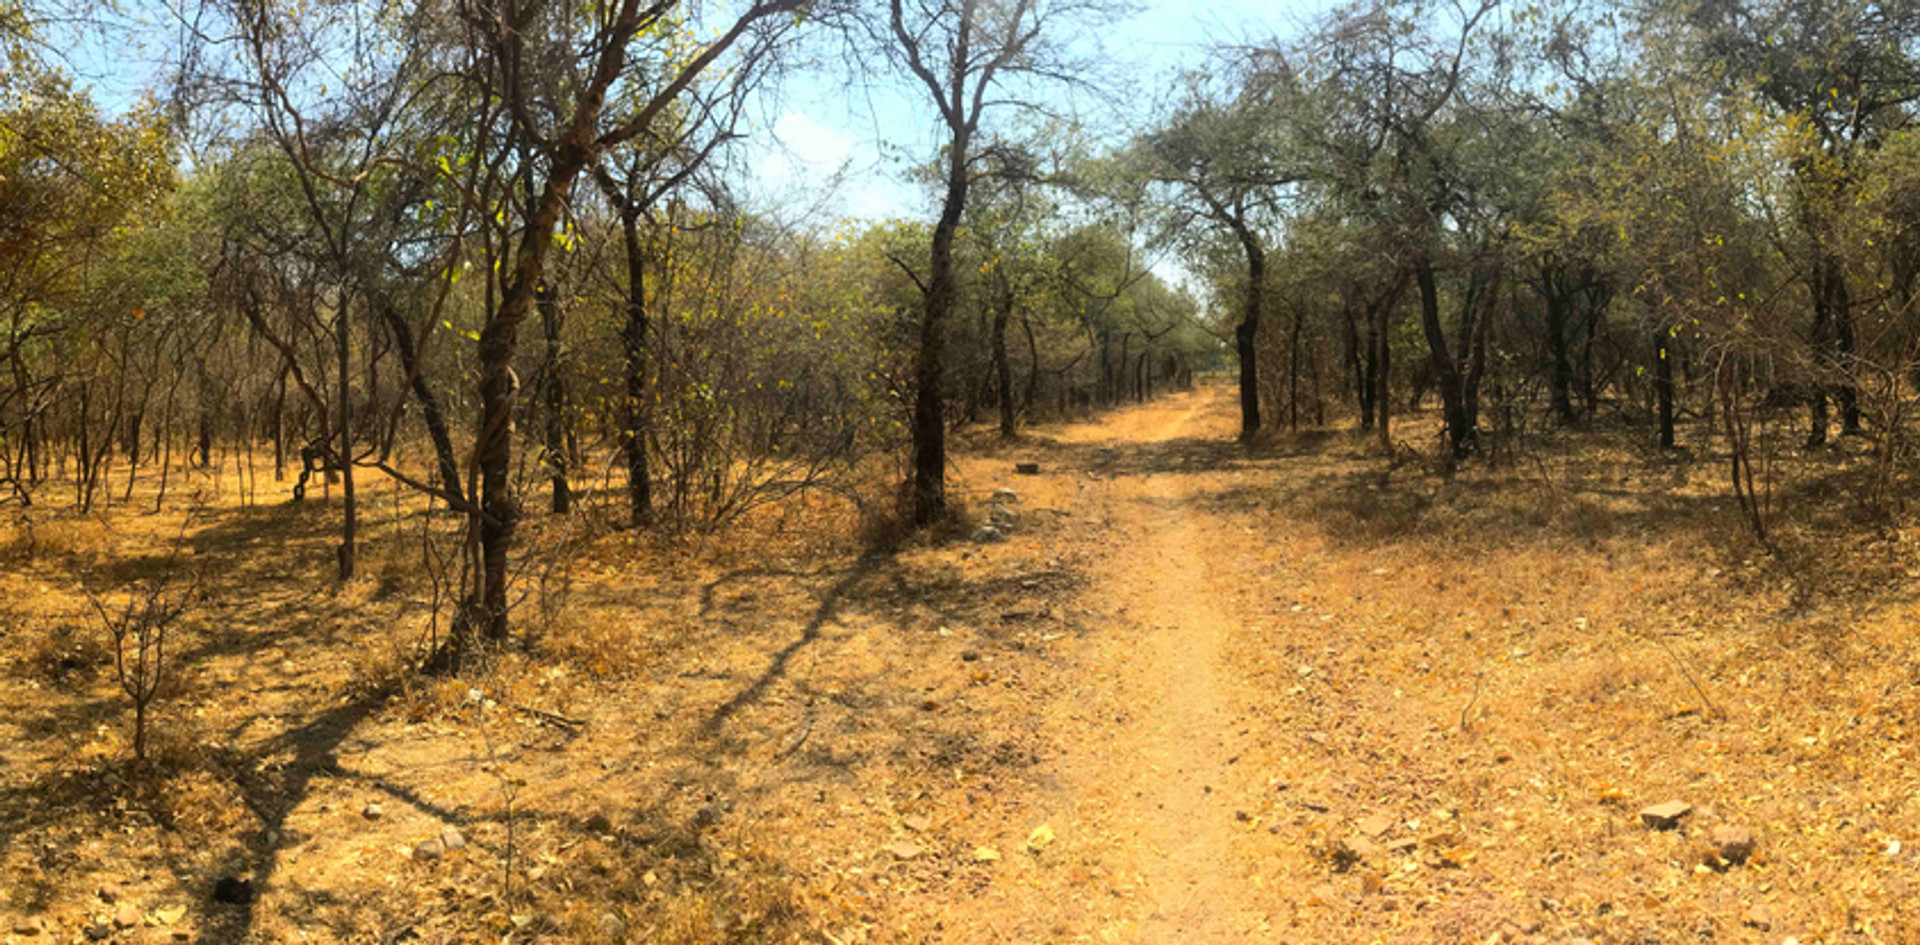 PANORAMA-FOREST-DRY-SCENERY-RAJASTHAN-HI